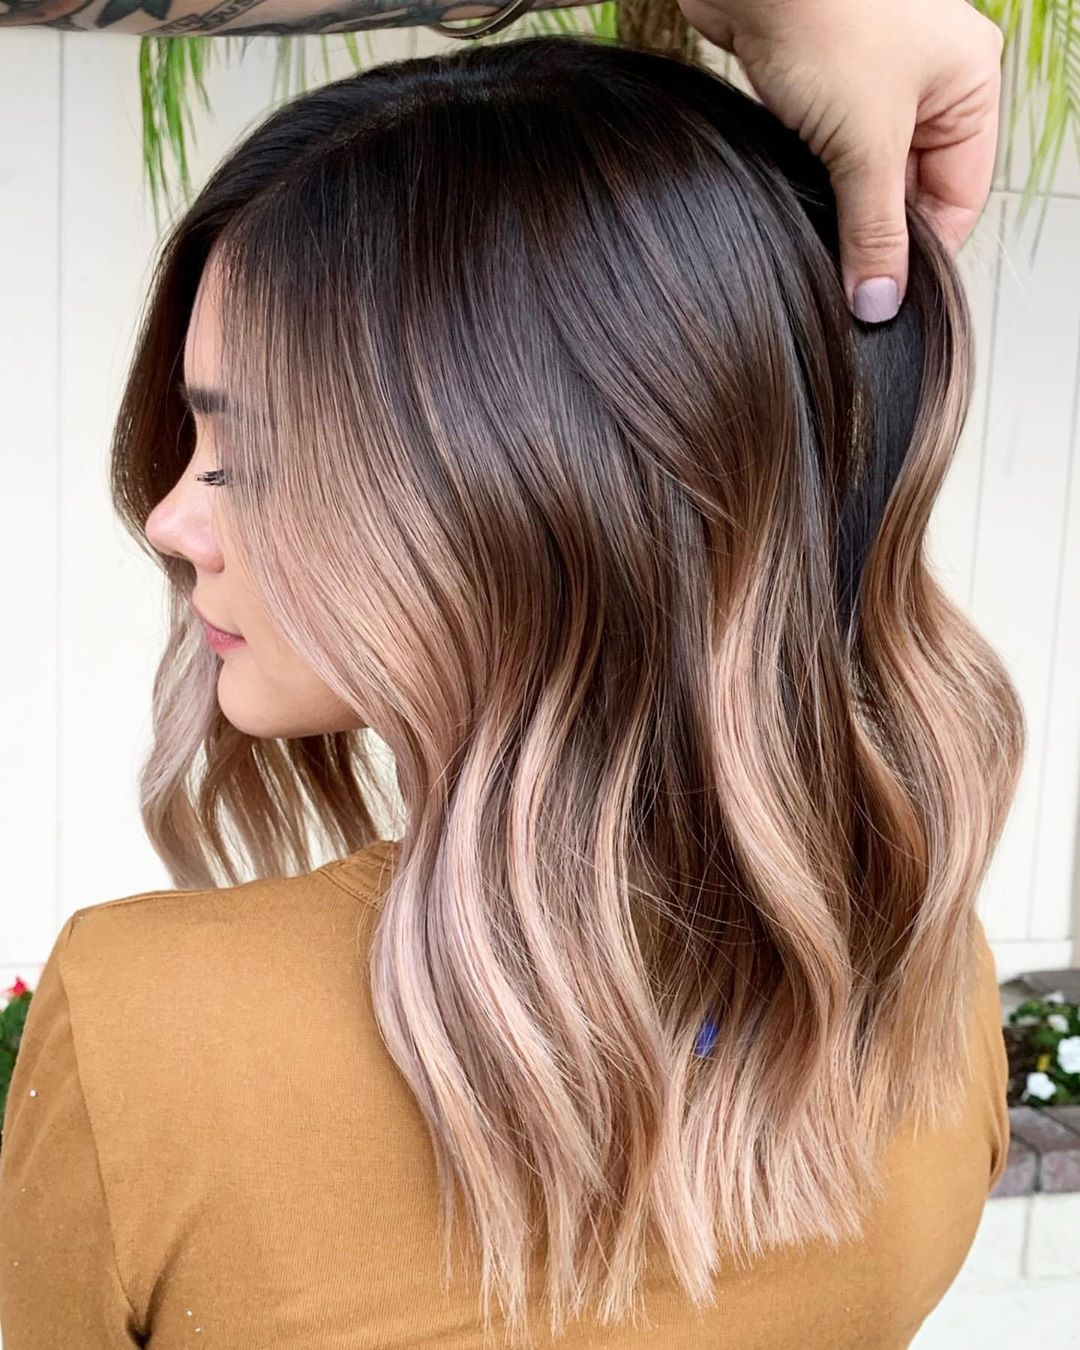 Best Short Mediumlength Hair Color And Style Ideas For Spring Vida Joven In 2020 Hair Styles Cool Hair Color Brunette Hair Color